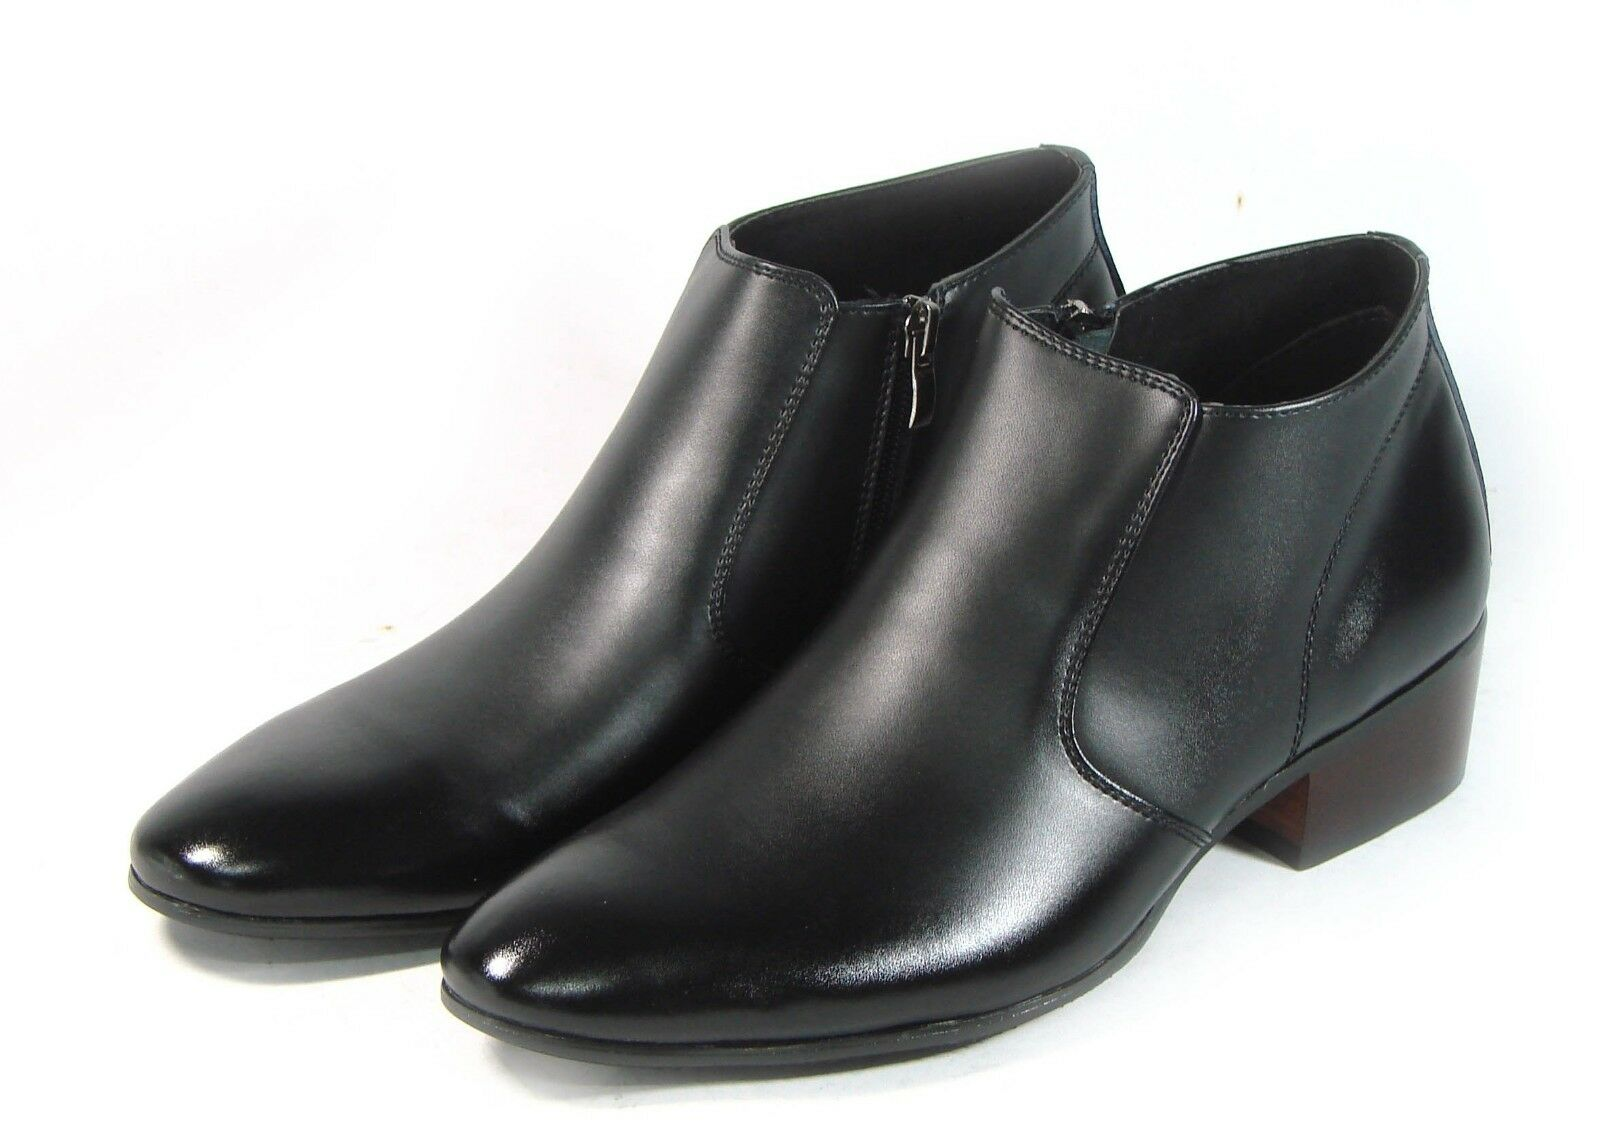 MOODA Men Ankle Boots Shoes Oxfords Dress Formals Leather Round Tip Zippers